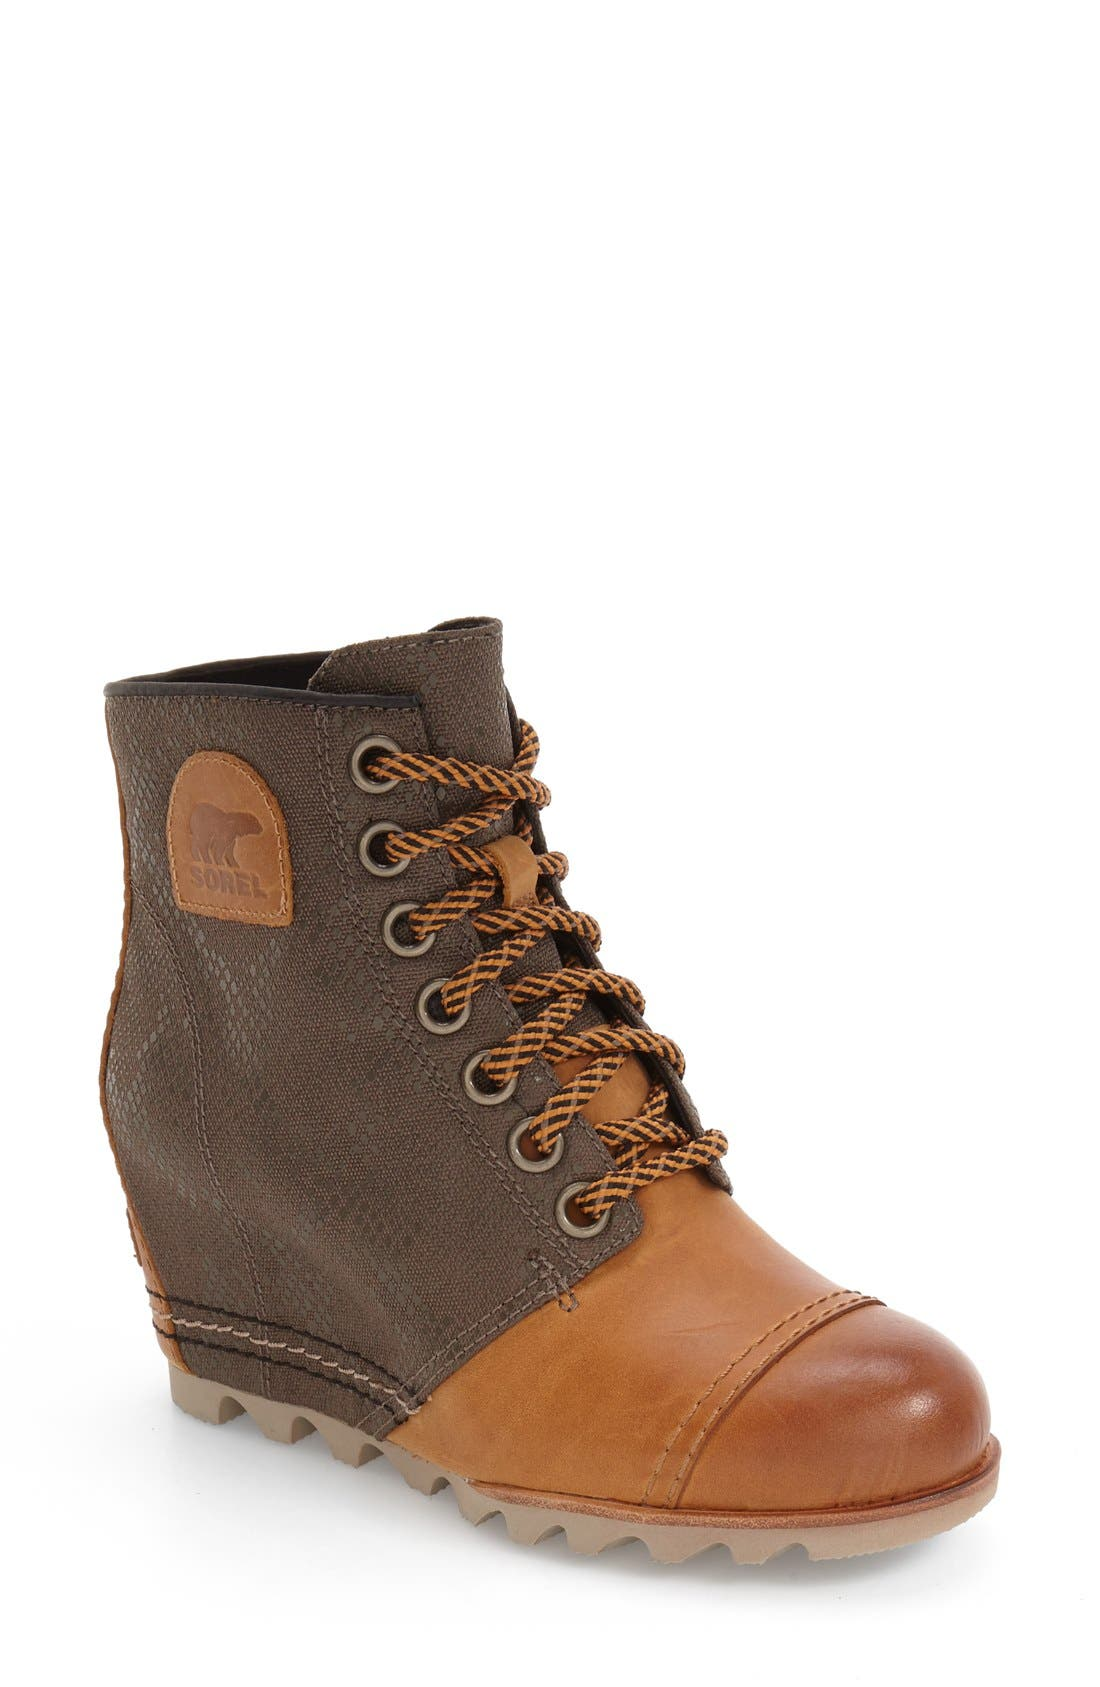 '1964 Premium Canvas' Waterproof Wedge Bootie,                         Main,                         color, Elk